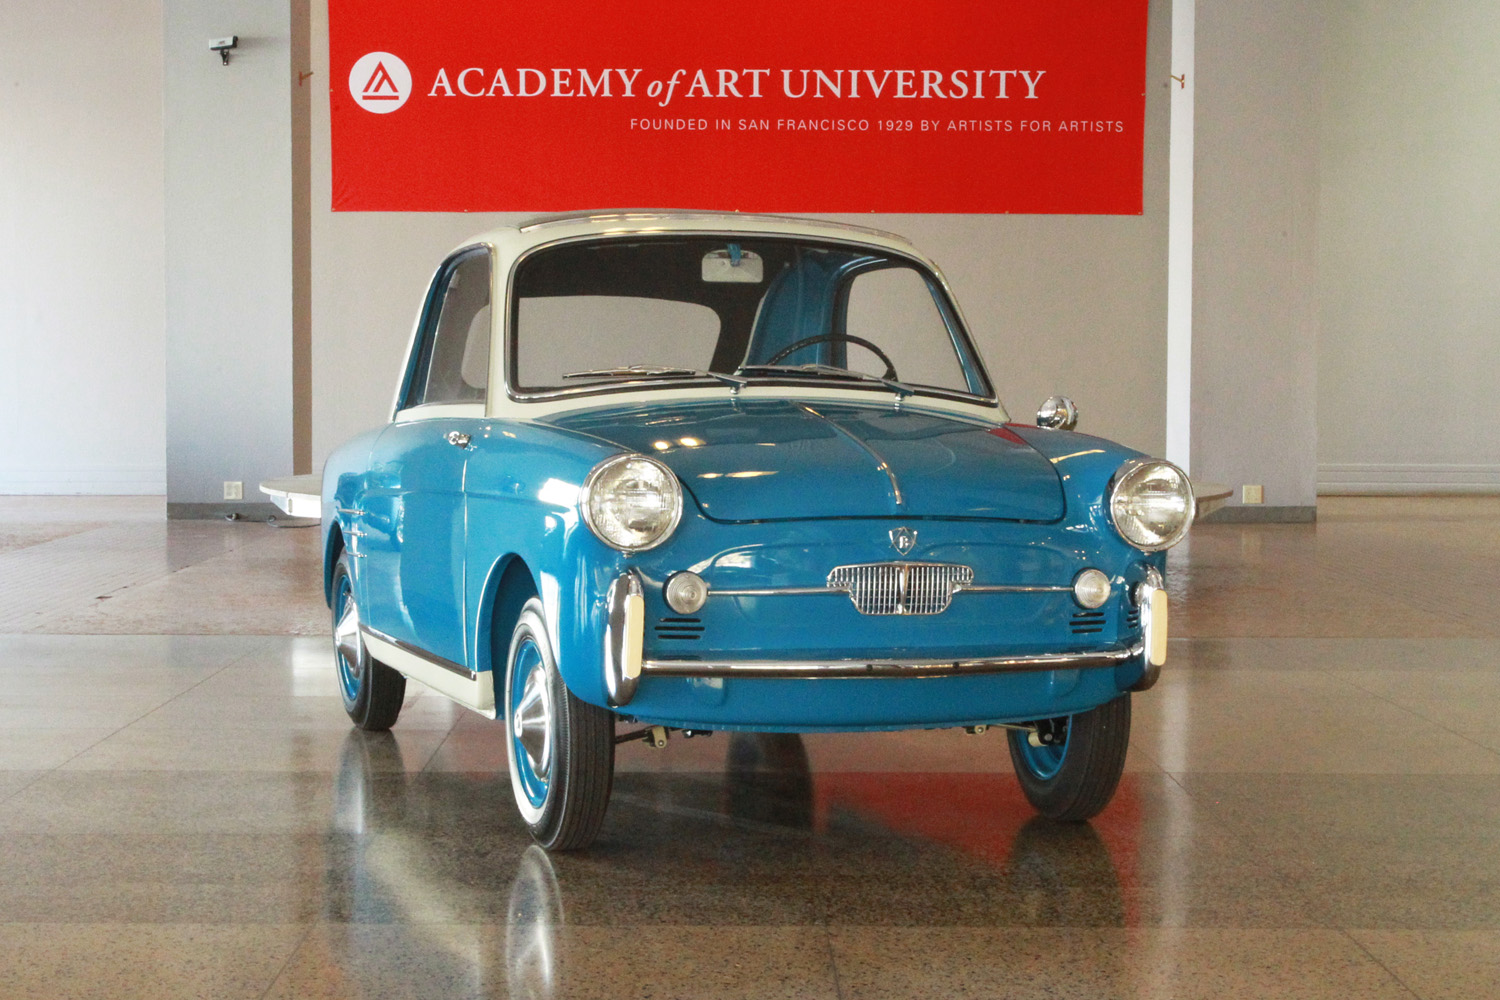 1959 Fiat Autobianchi Bianchina Transformabile